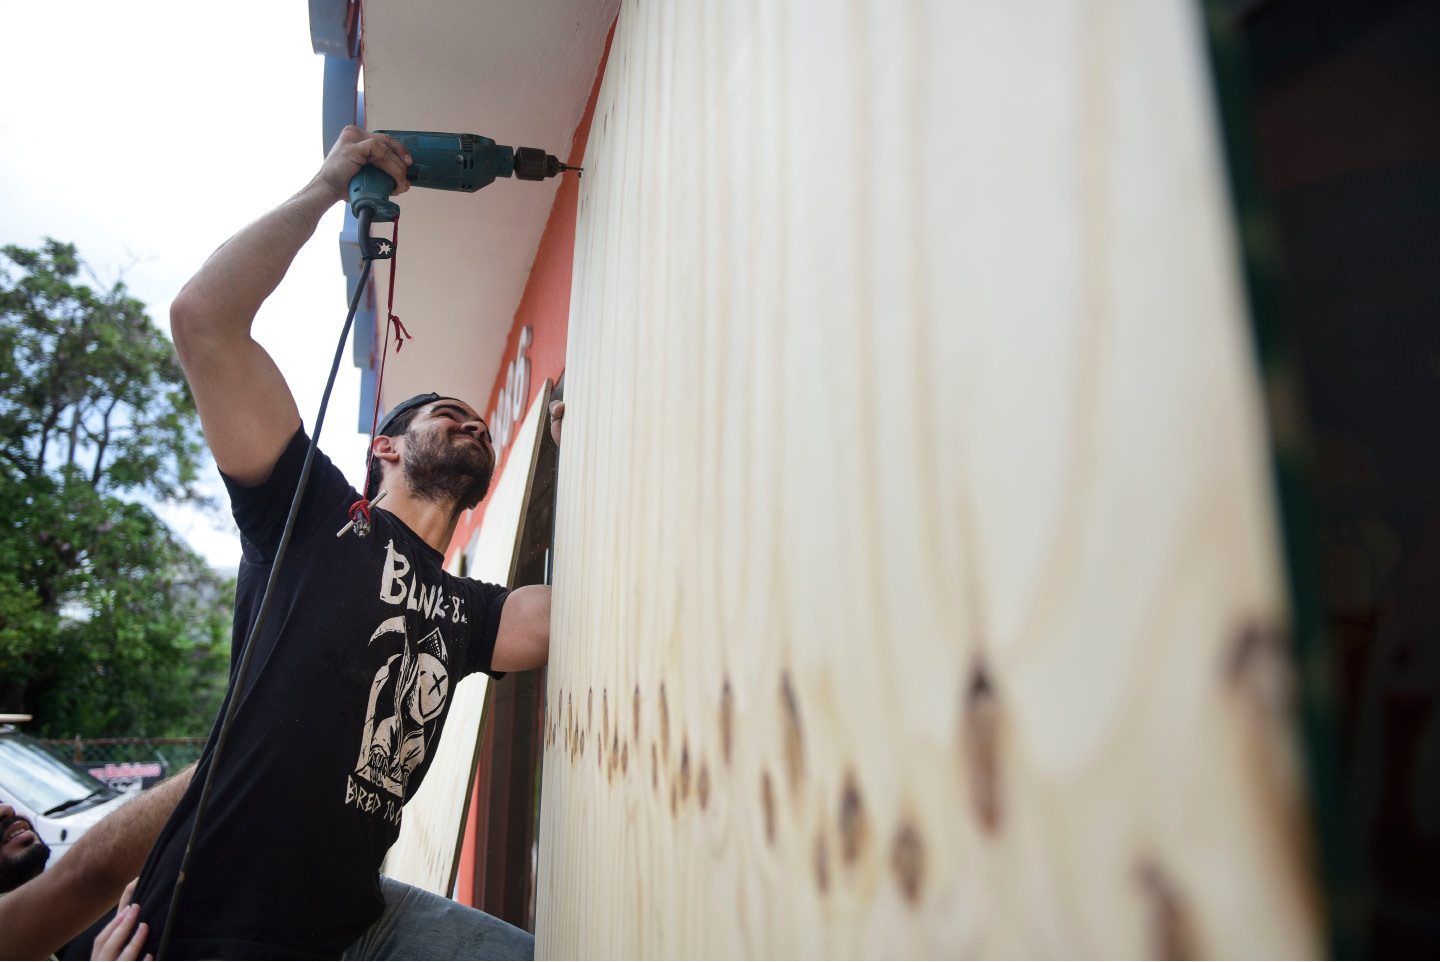 Cyber School Supply employee Christopher Rodriguez installs wood panels on windows in preparation for Hurricane Irma, in Toa Baja, Puerto Rico, Tuesday, Sept. 5, 2017. Irma grew into a dangerous Category 5 storm, the most powerful seen in the Atlantic in over a decade, and roared toward islands in the northeast Caribbean Tuesday. (AP Photo/Carlos Giusti)